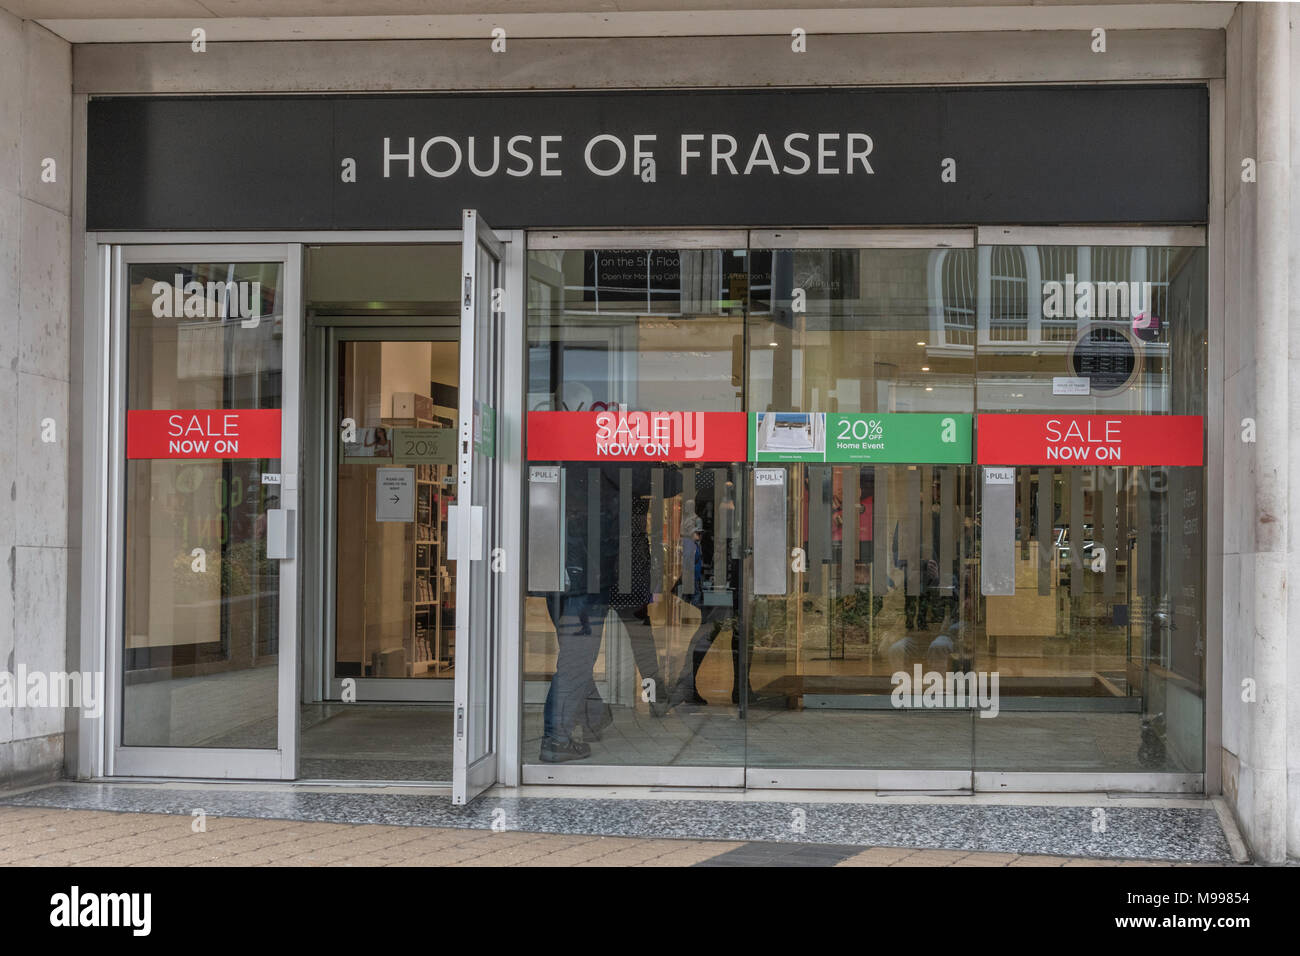 Exterior entrance of House of Fraser shop in Plymouth, Devon. - Stock Image